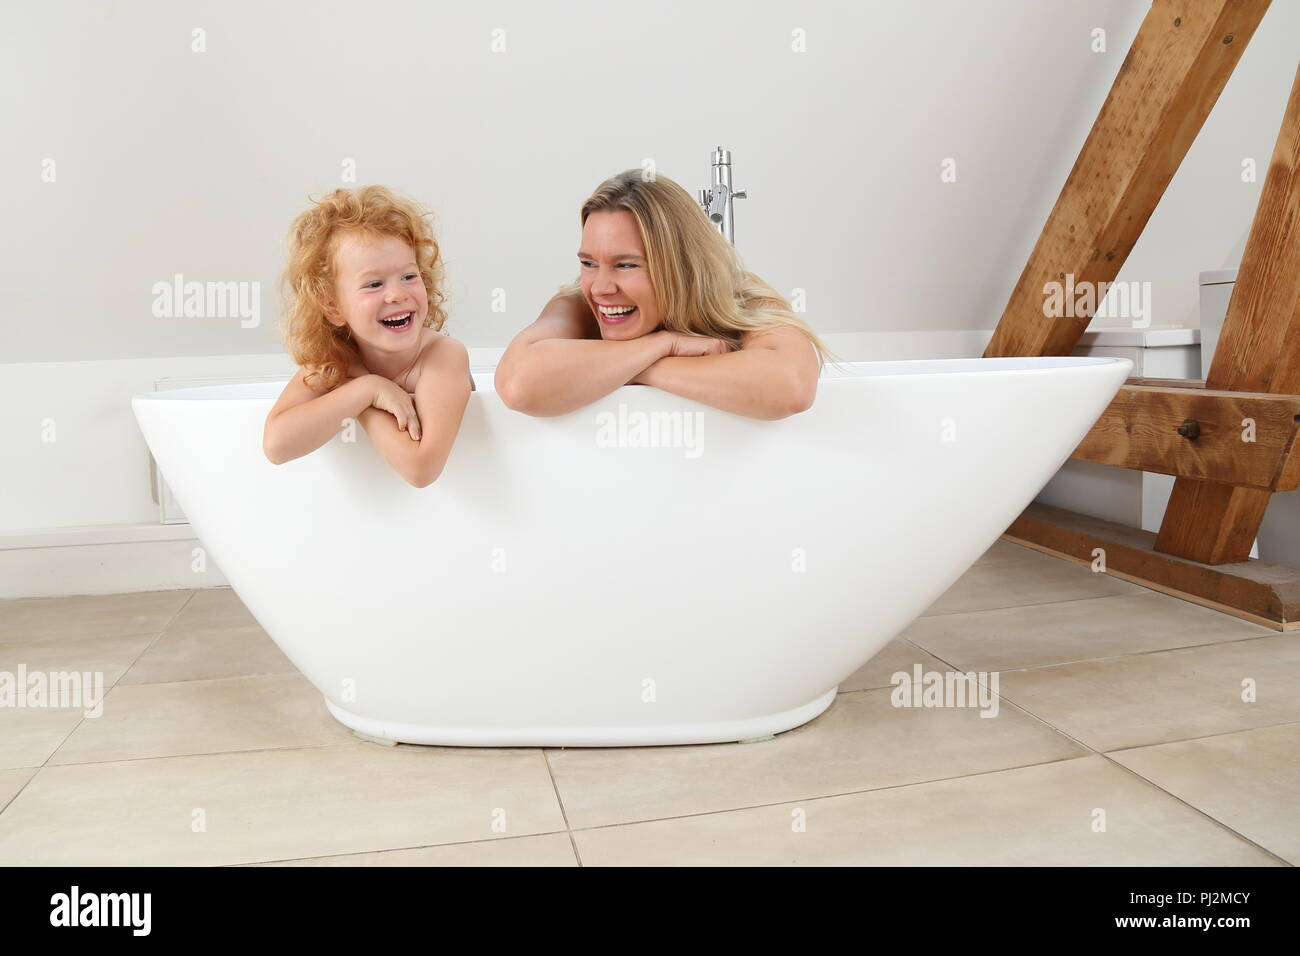 Mother and Daughter looking over the edge of a freestanding Bath Tub in a modern Bathroom - Stock Image